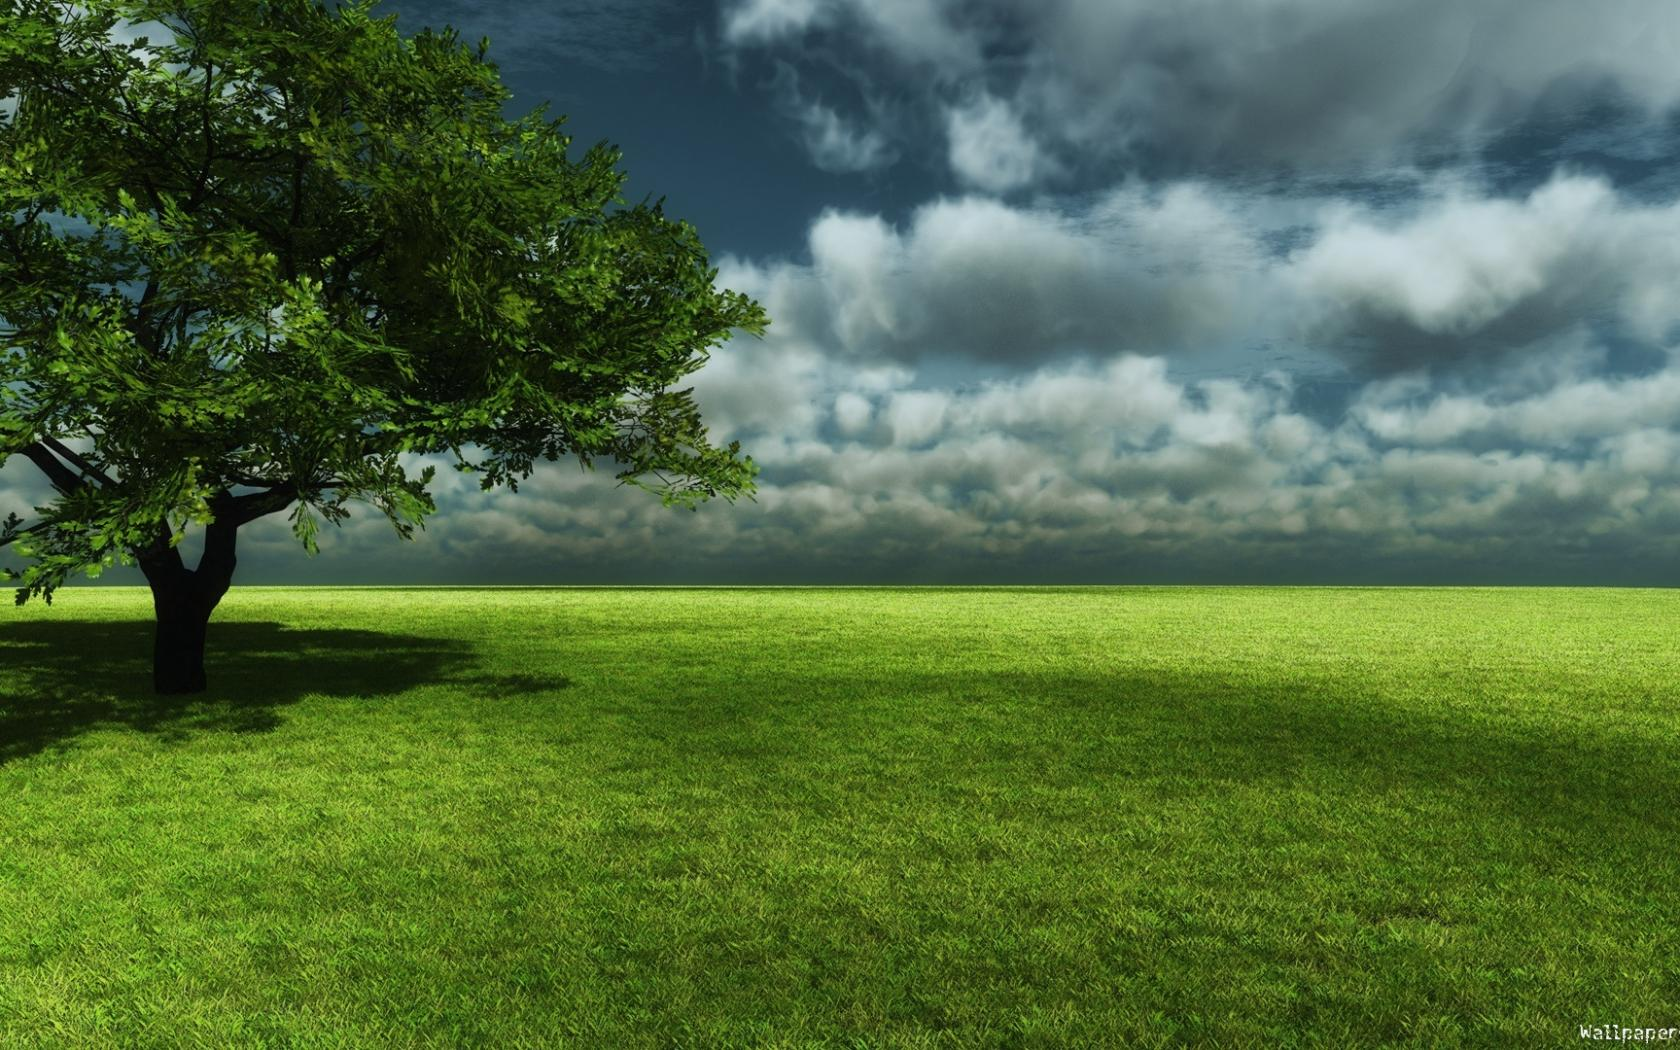 1080P tree on the prairie hd Wallpaper 1680x1050 widescreen hd wallpaper download,background image,wallpaper and Online Stock Photo Images